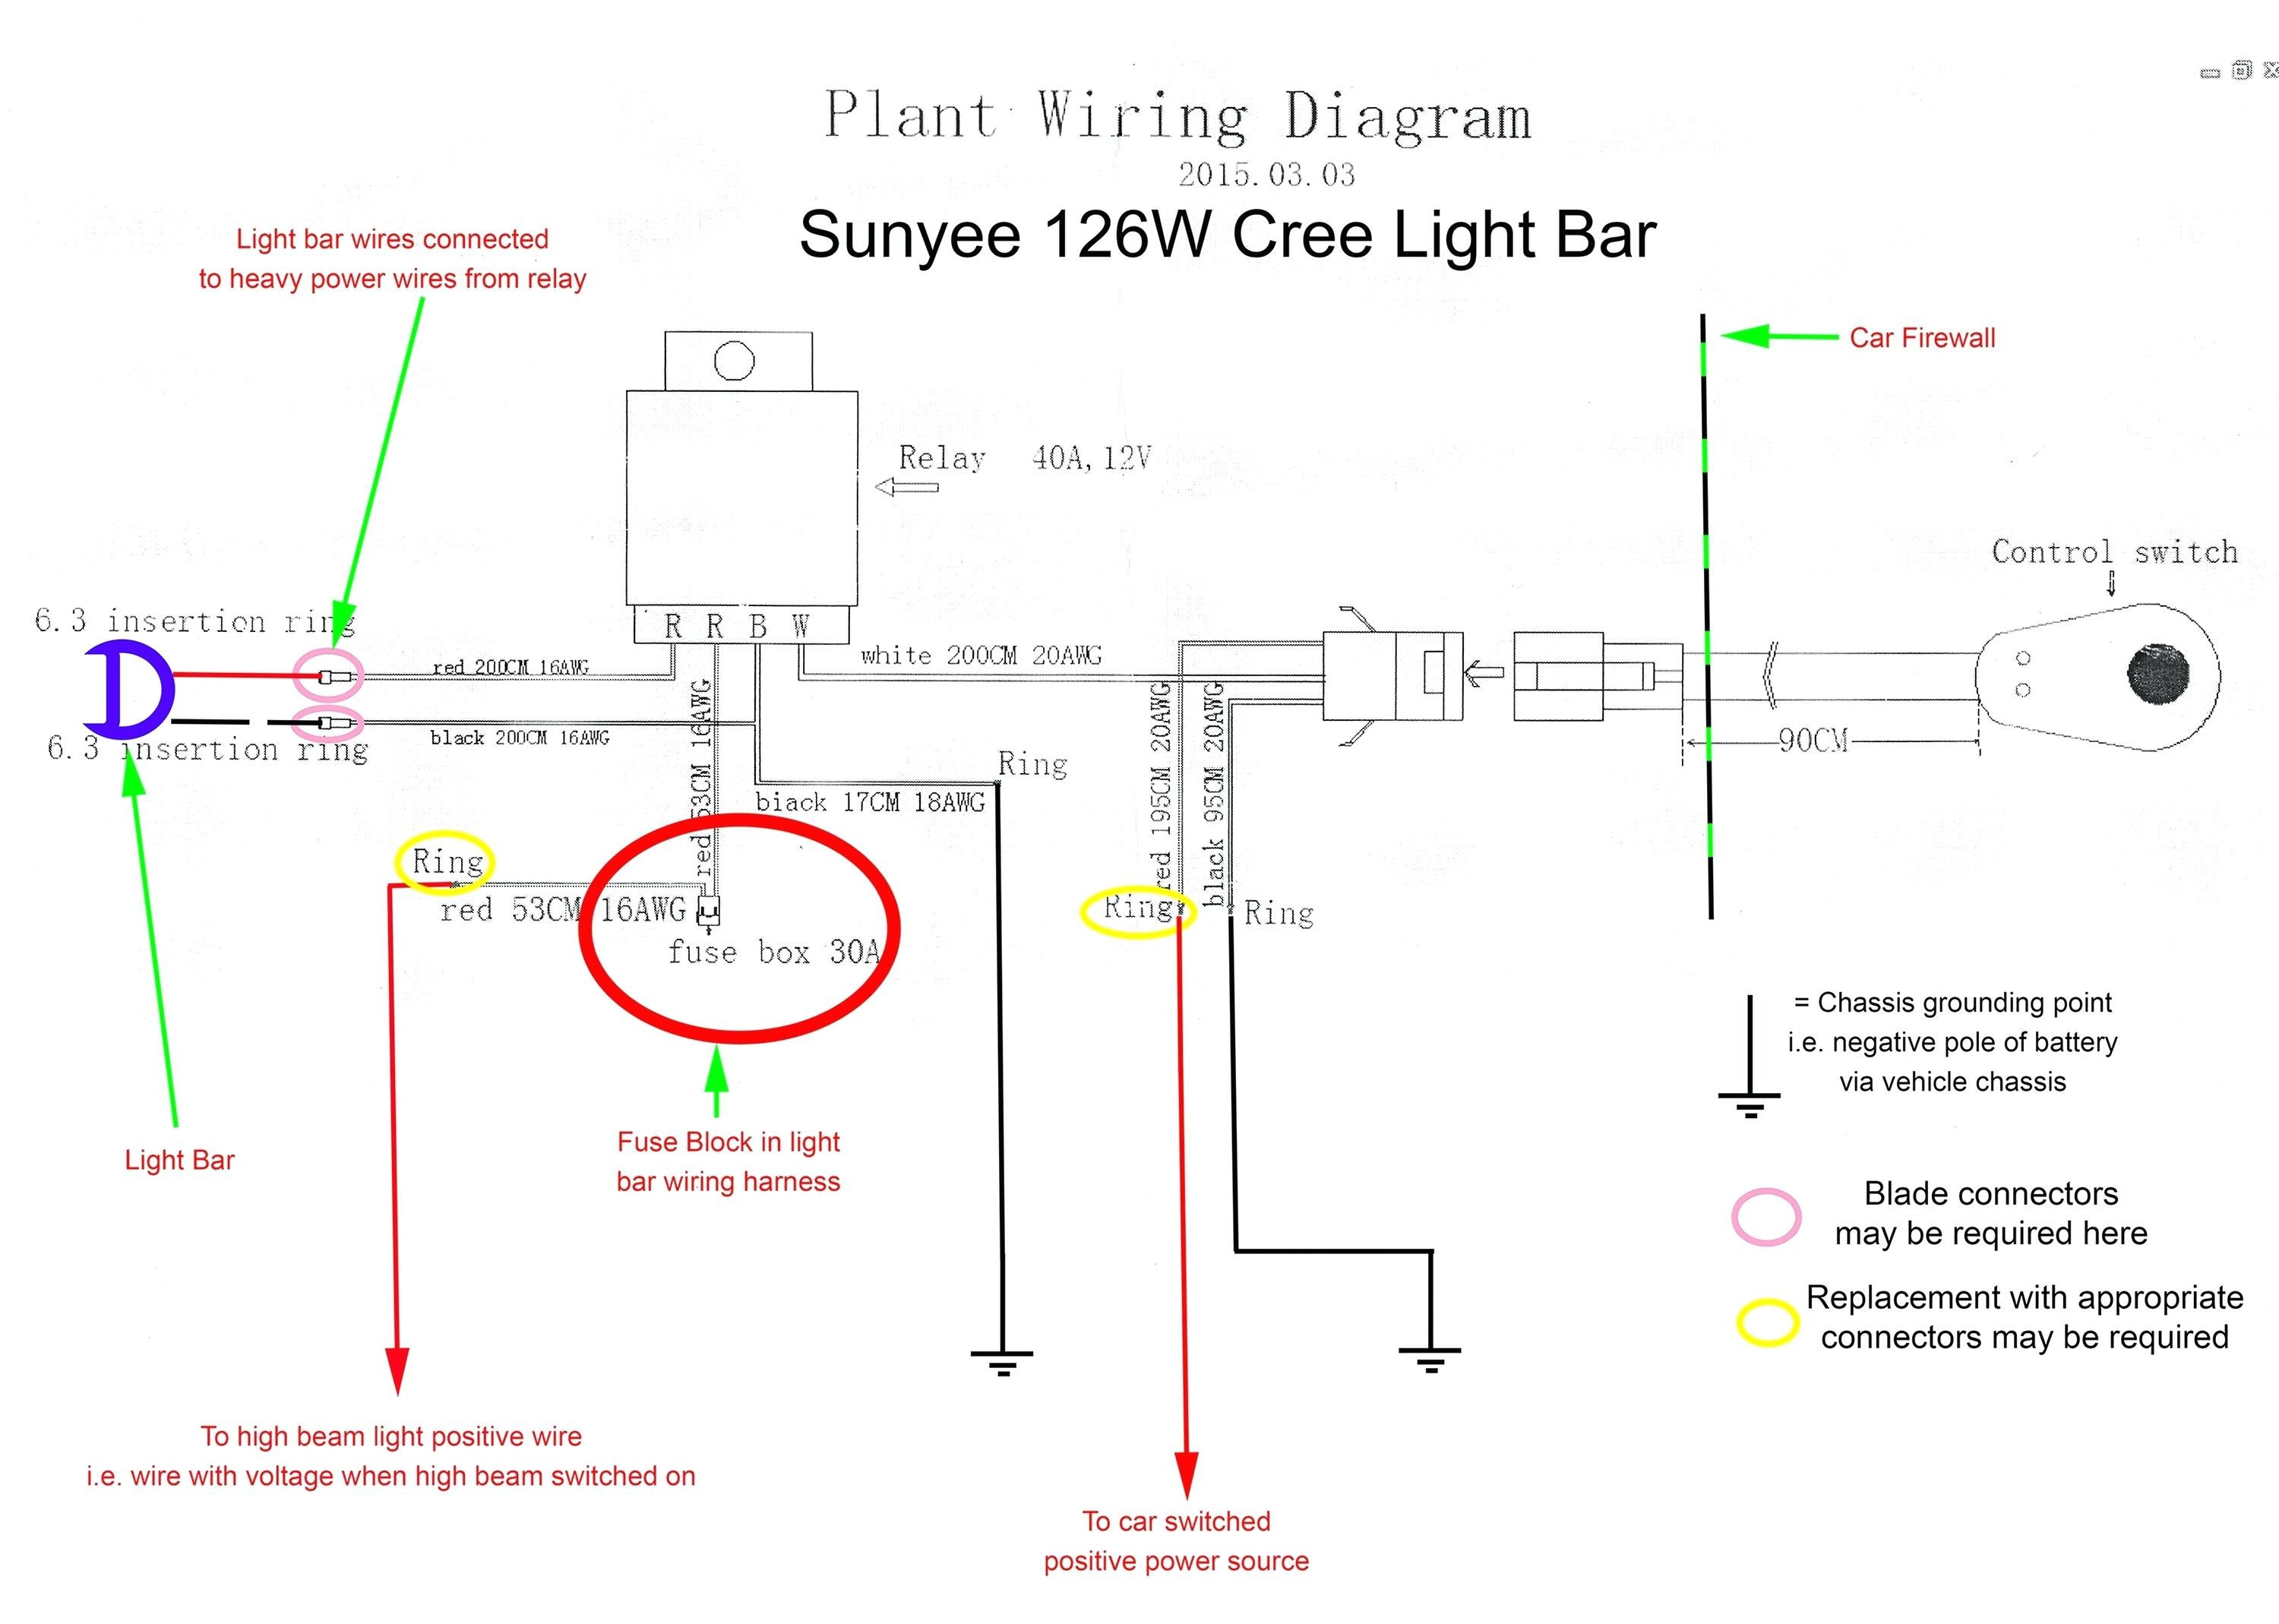 WRG-2891] Street Light Wiring Diagram